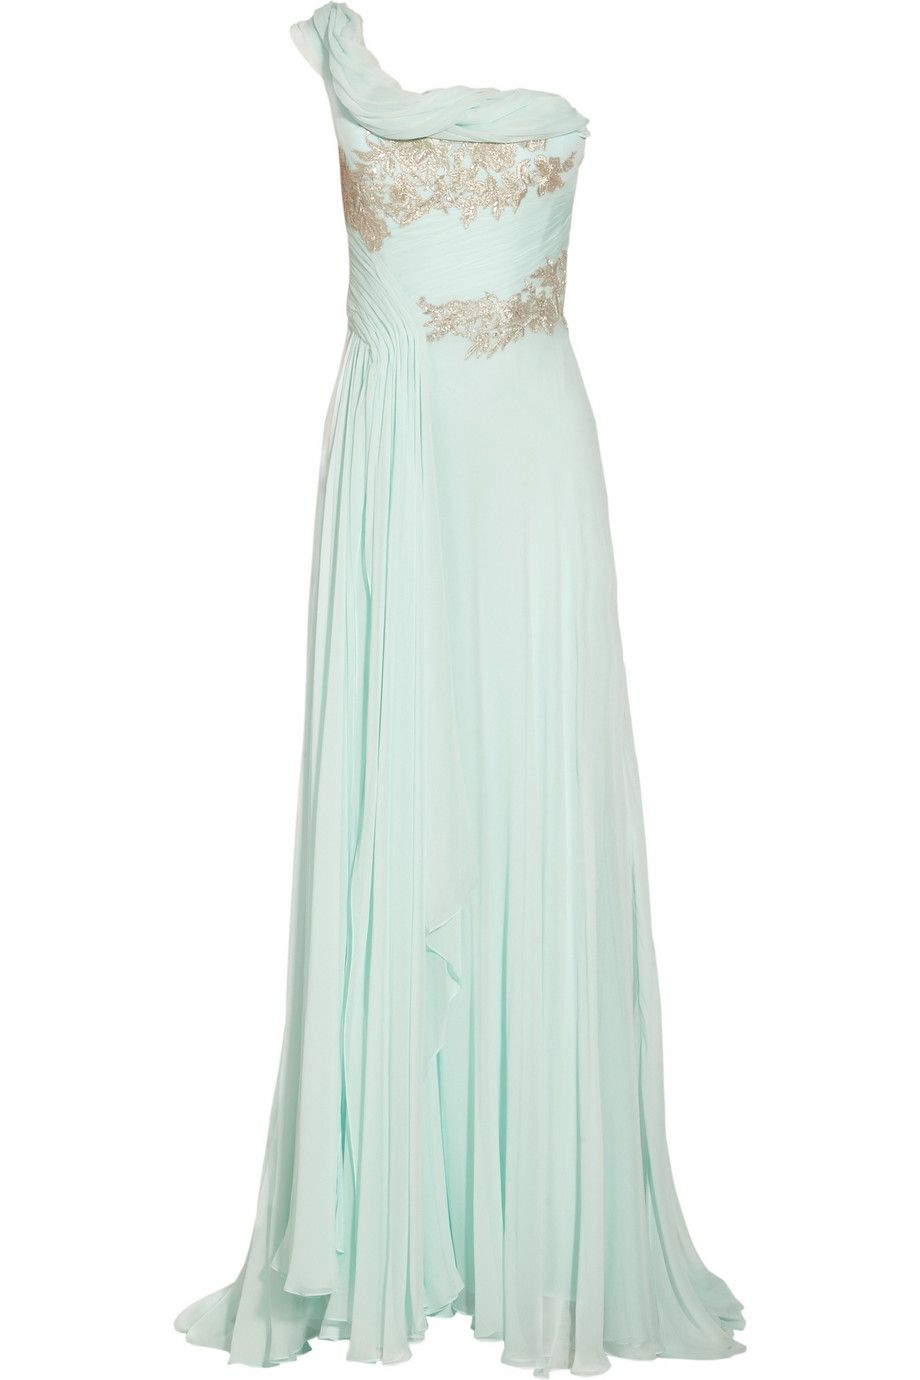 MARCHESA mint green dress | FabFash | Pinterest | Mint green dress ...